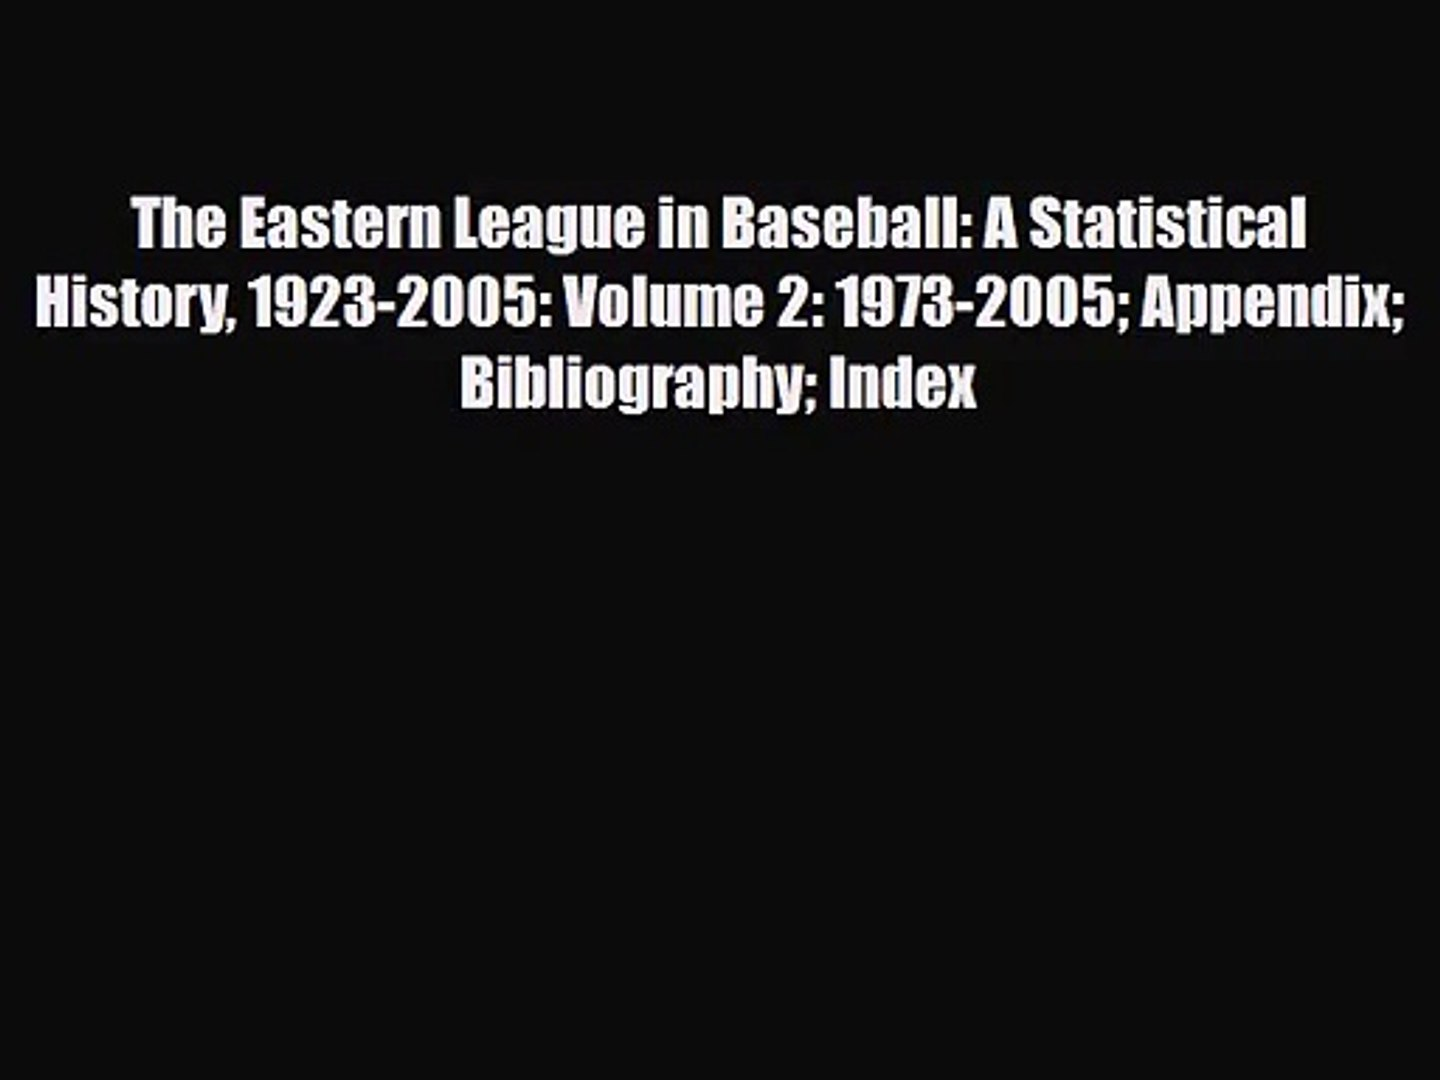 [PDF Download] The Eastern League in Baseball: A Statistical History 1923-2005: Volume 2: 1973-2005